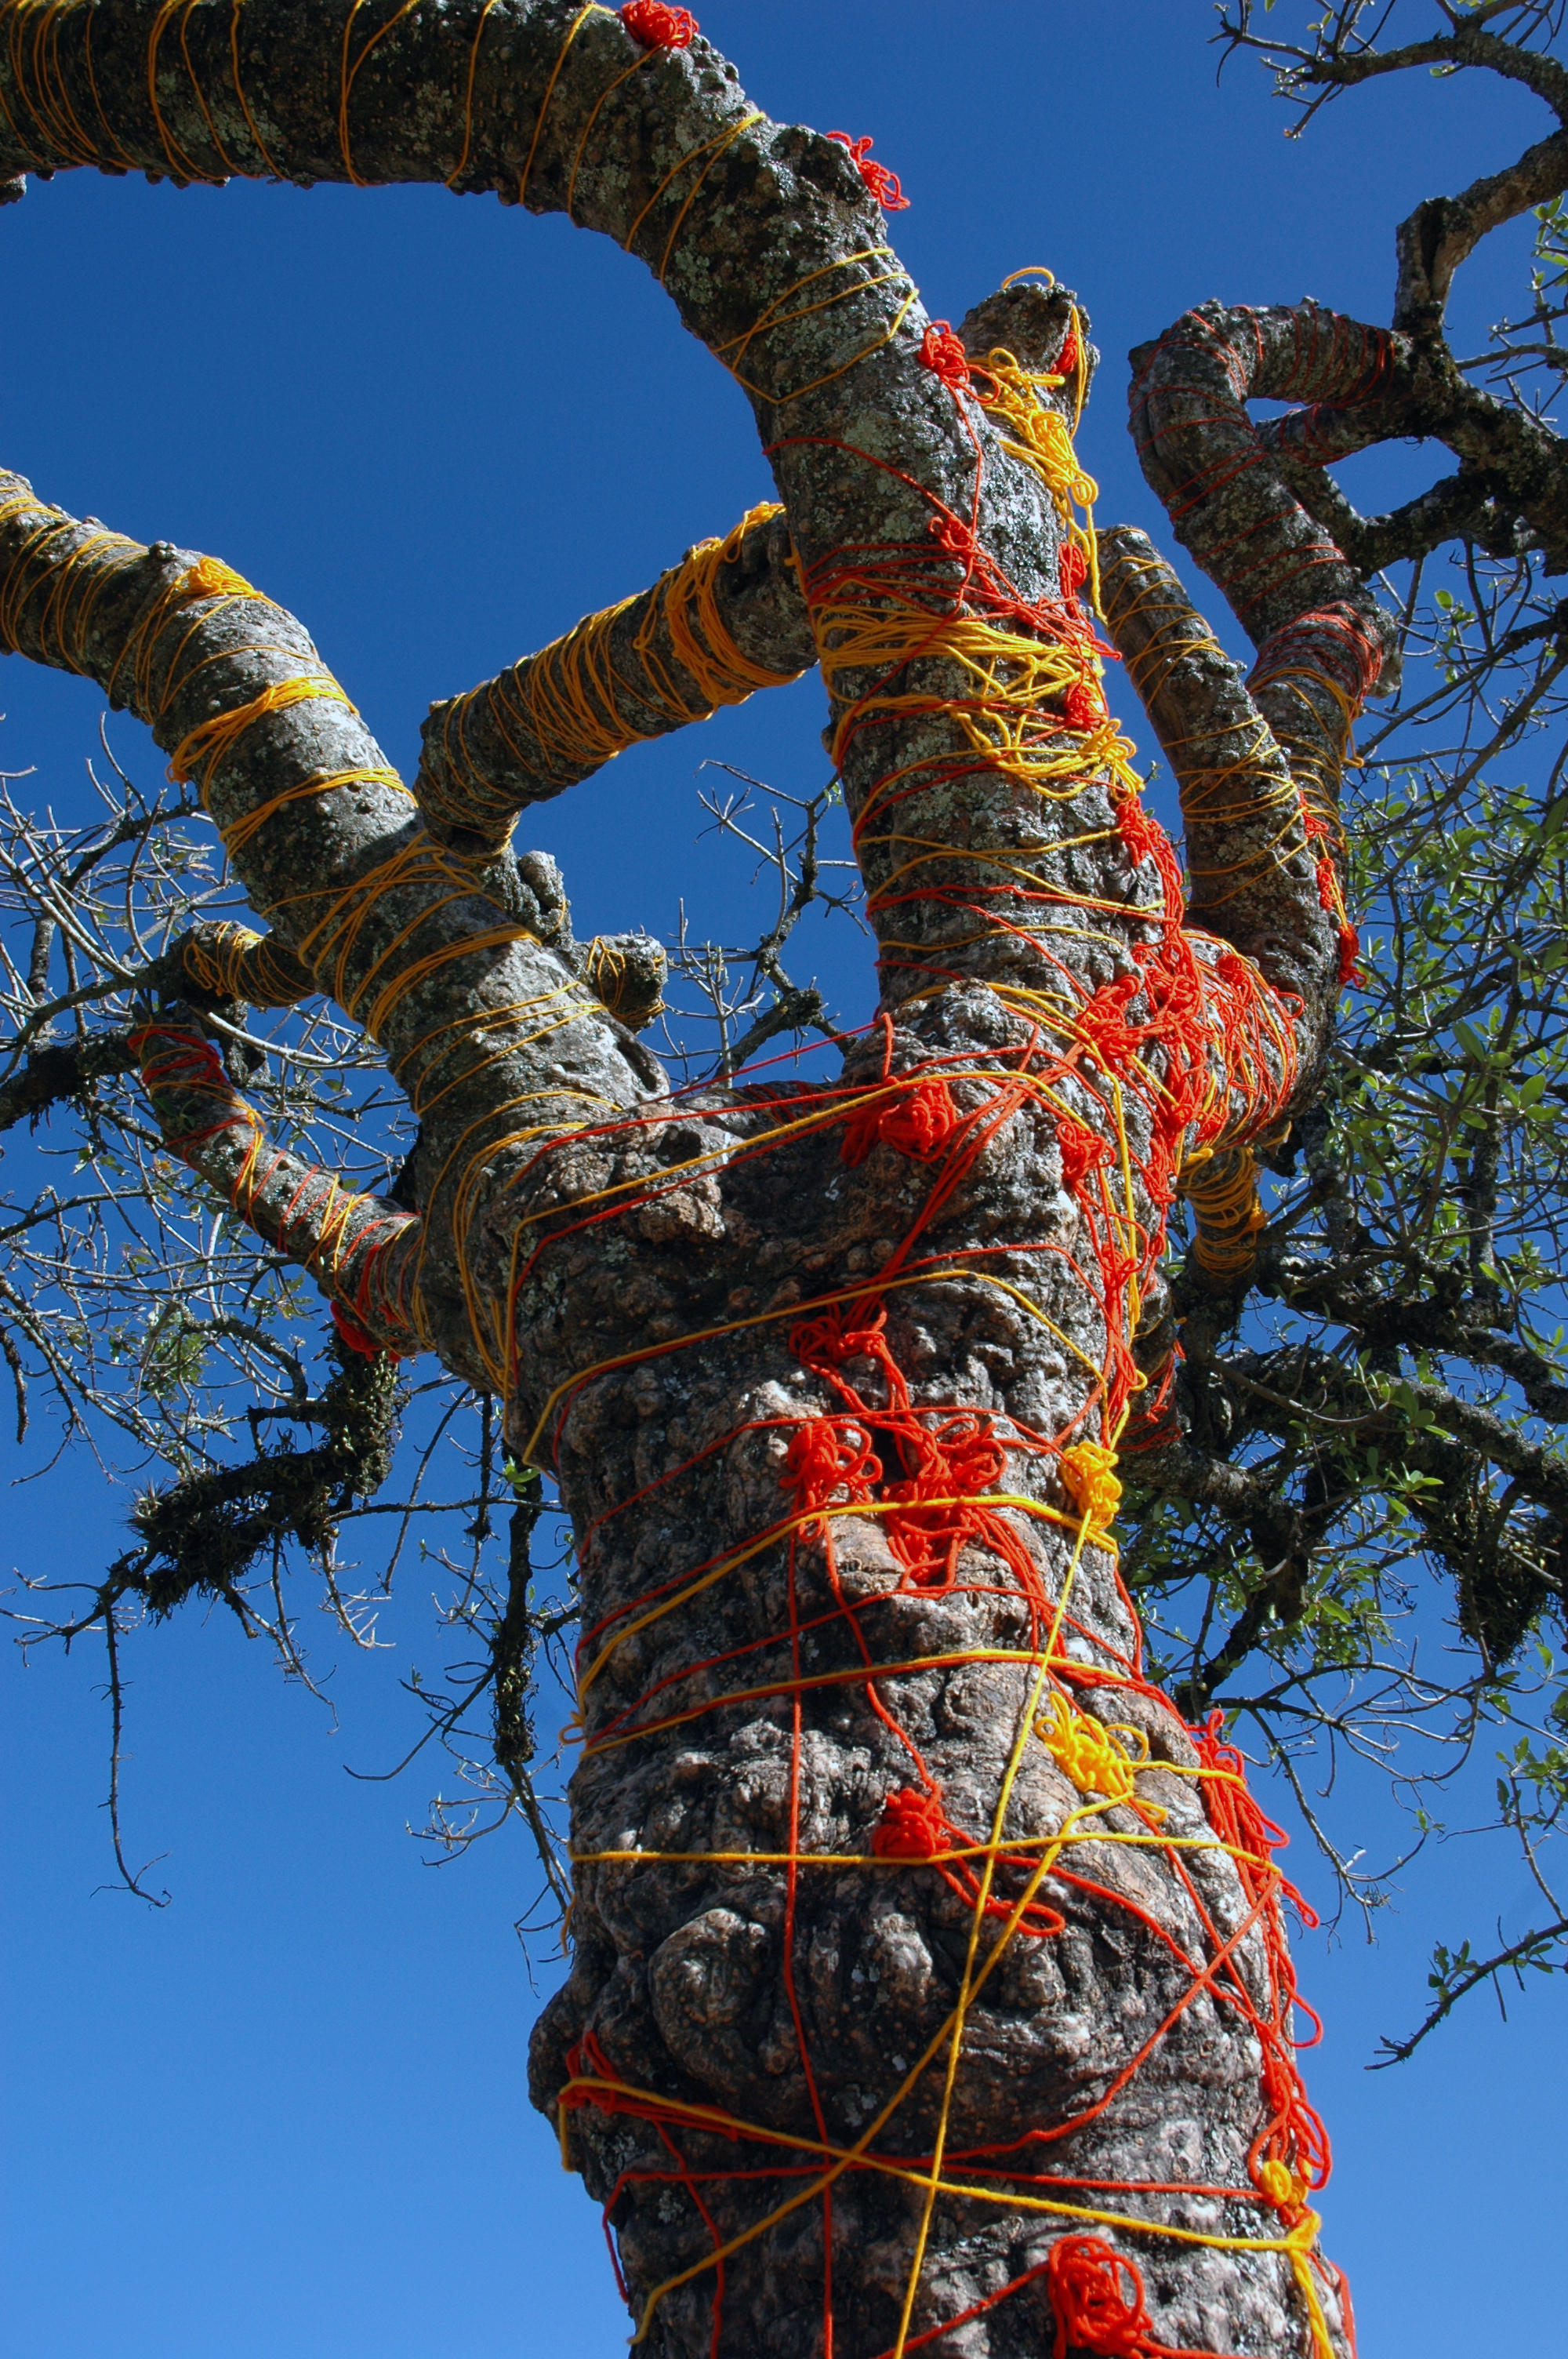 This is a close up of the sacred tree.